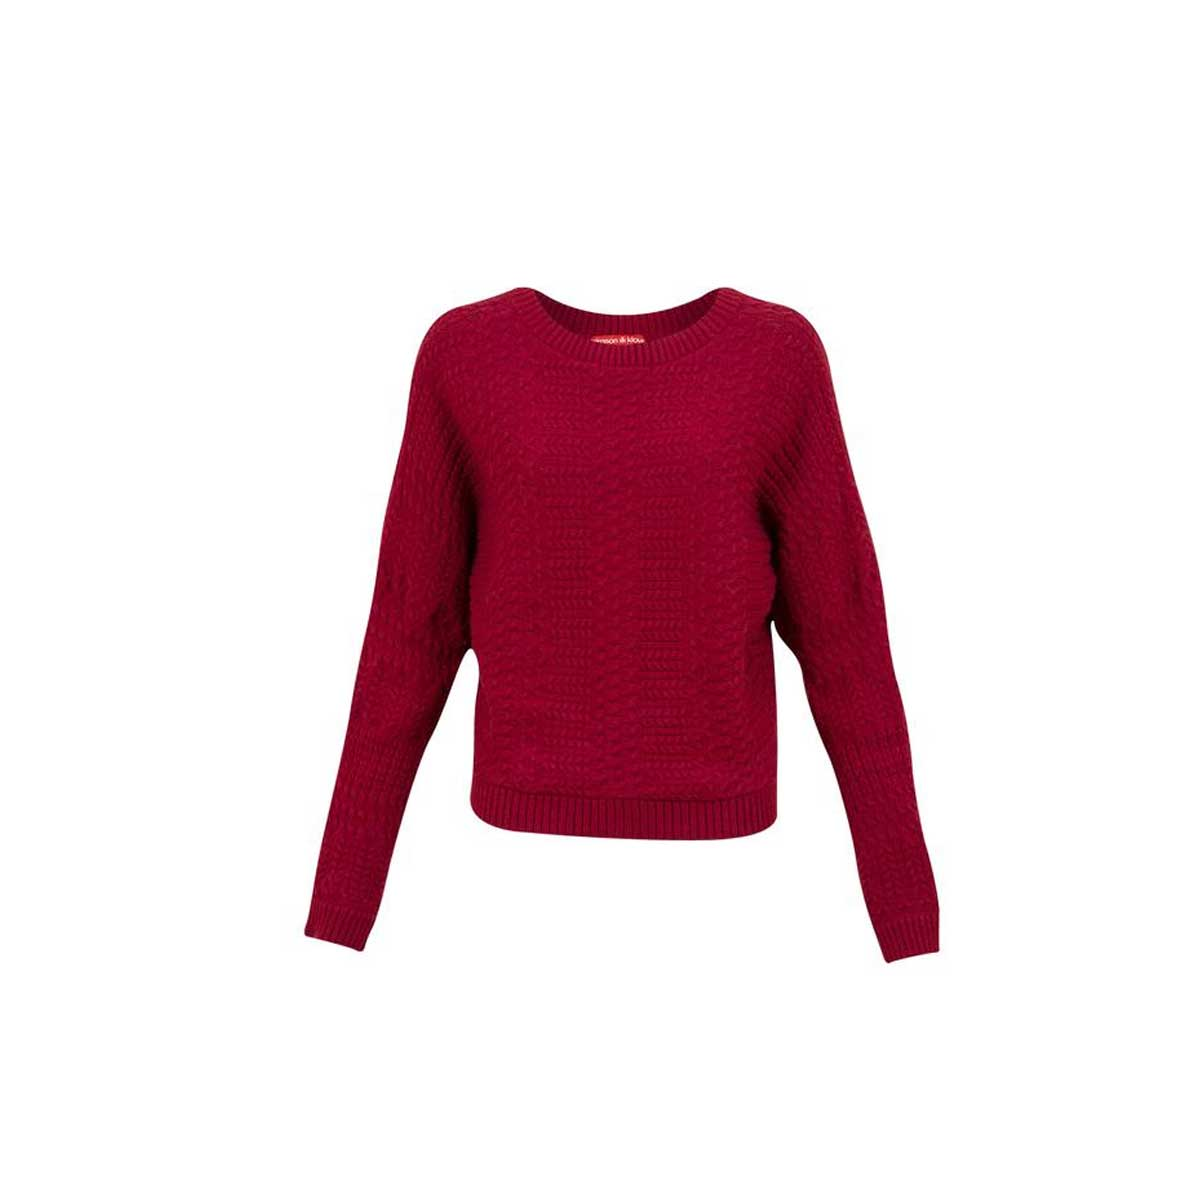 Krimson Klover Women's Elora Pullover Top in Wine